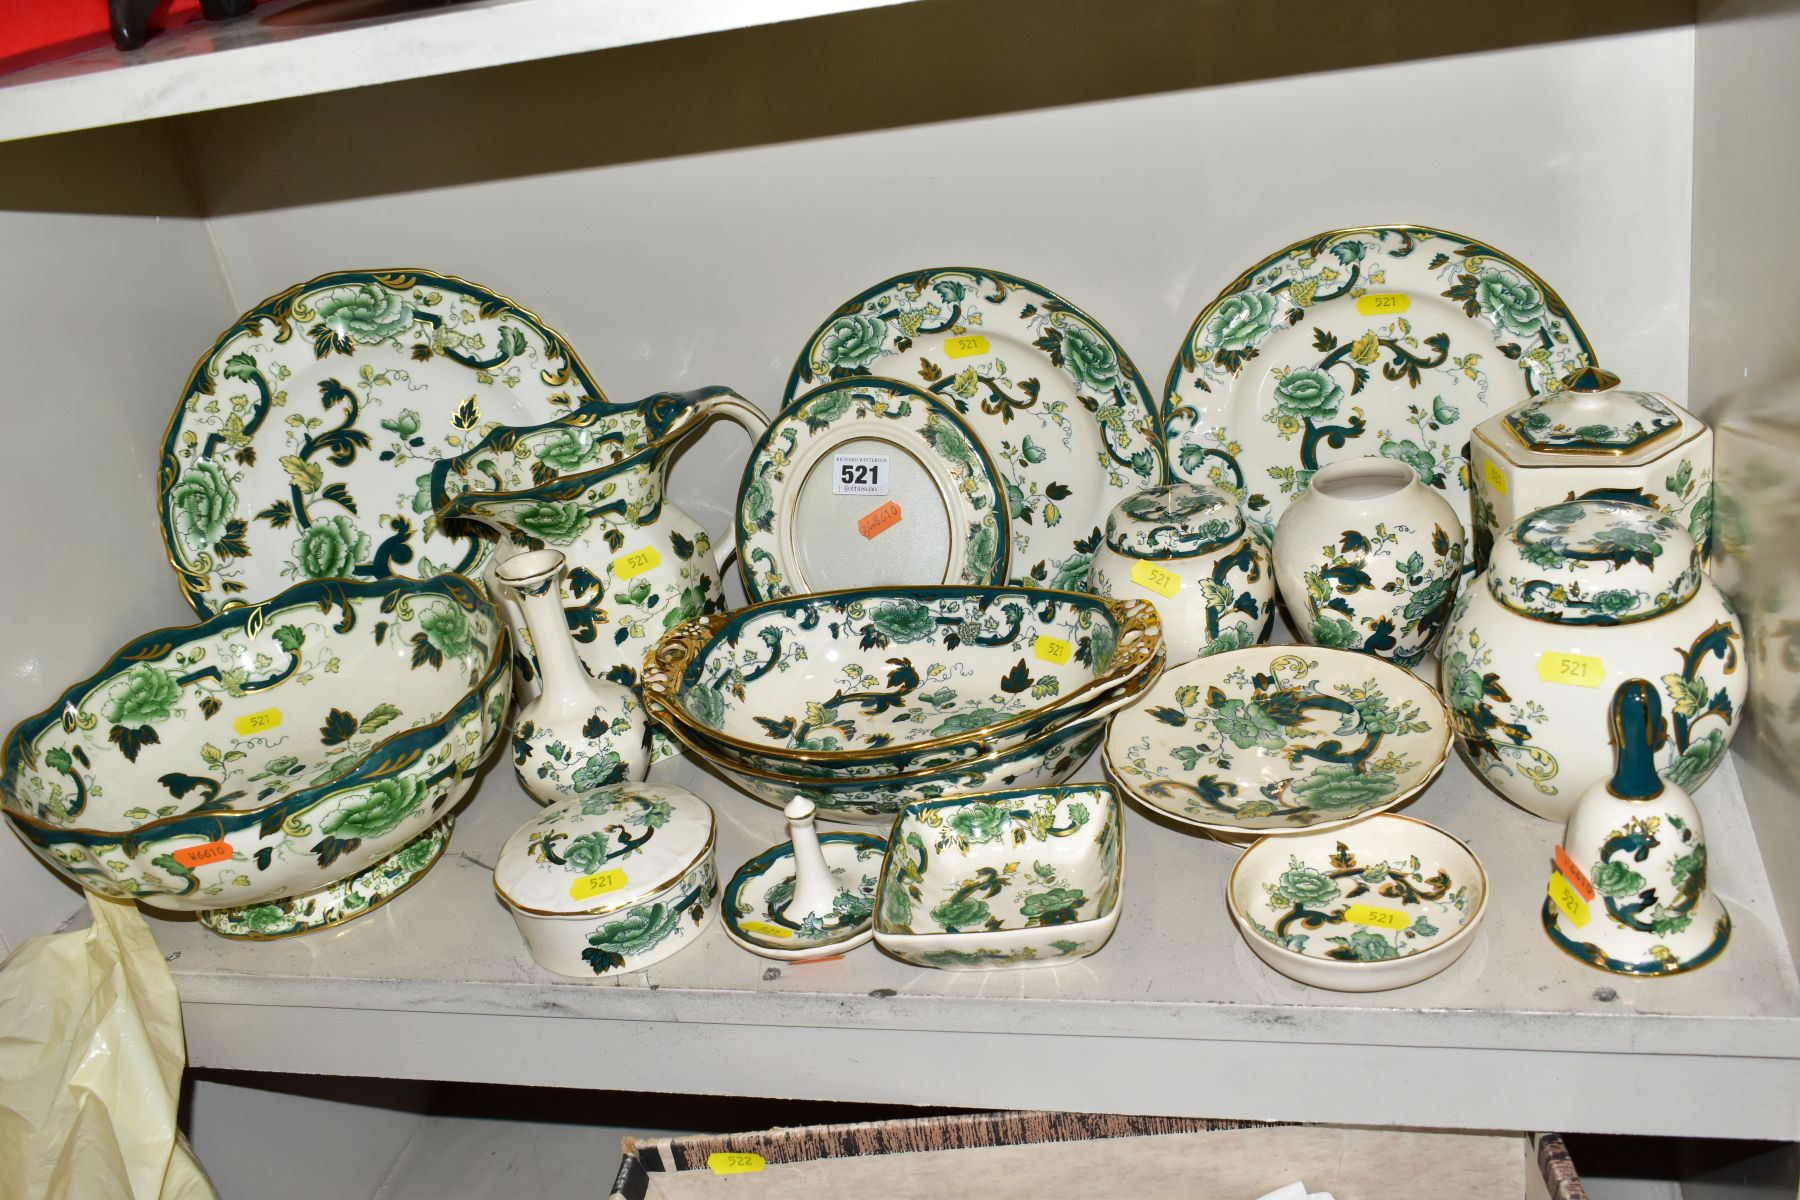 A COLLECTION OF MASONS IRONSTONE 'CHARTREUSE' PATTERN PLATES, JUGS, BOWLS, GINGER JARS, etc,